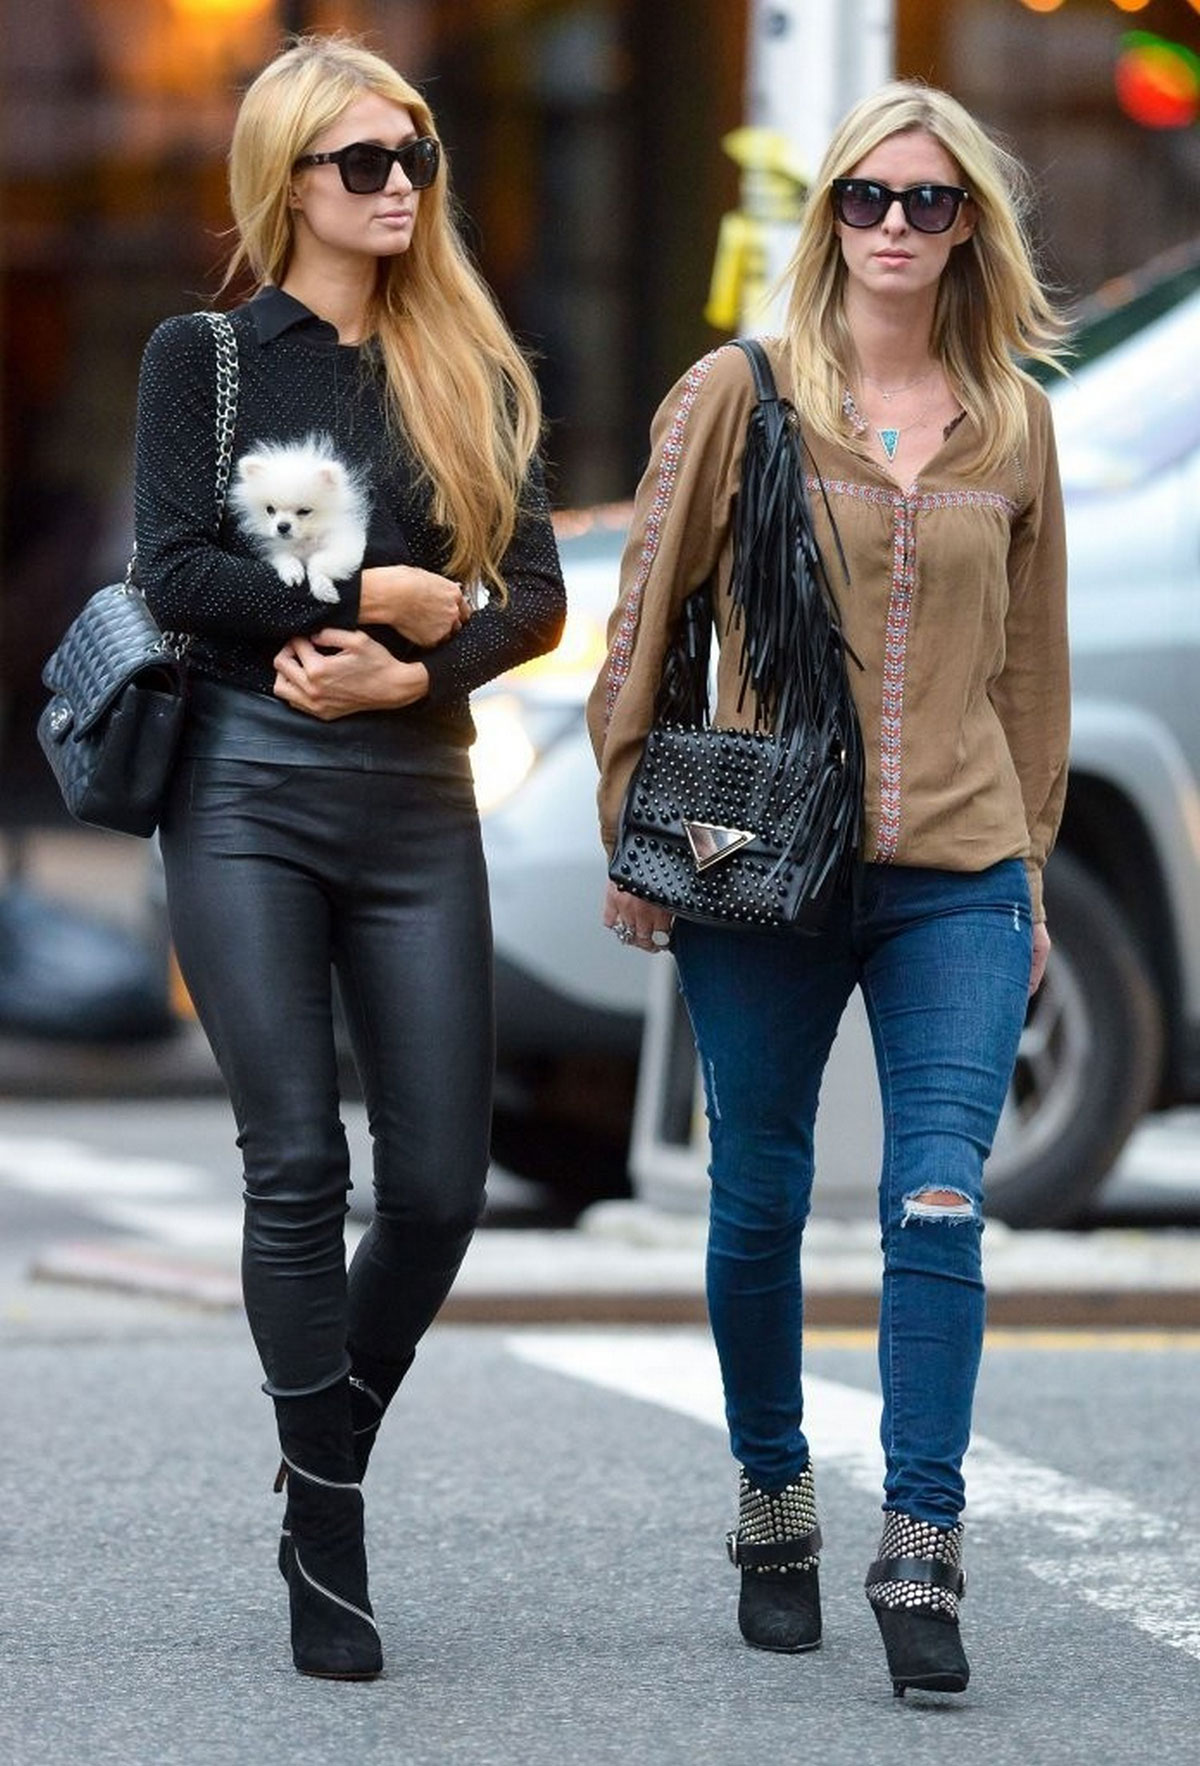 Paris and Nicky Hilton were spotted in New York City